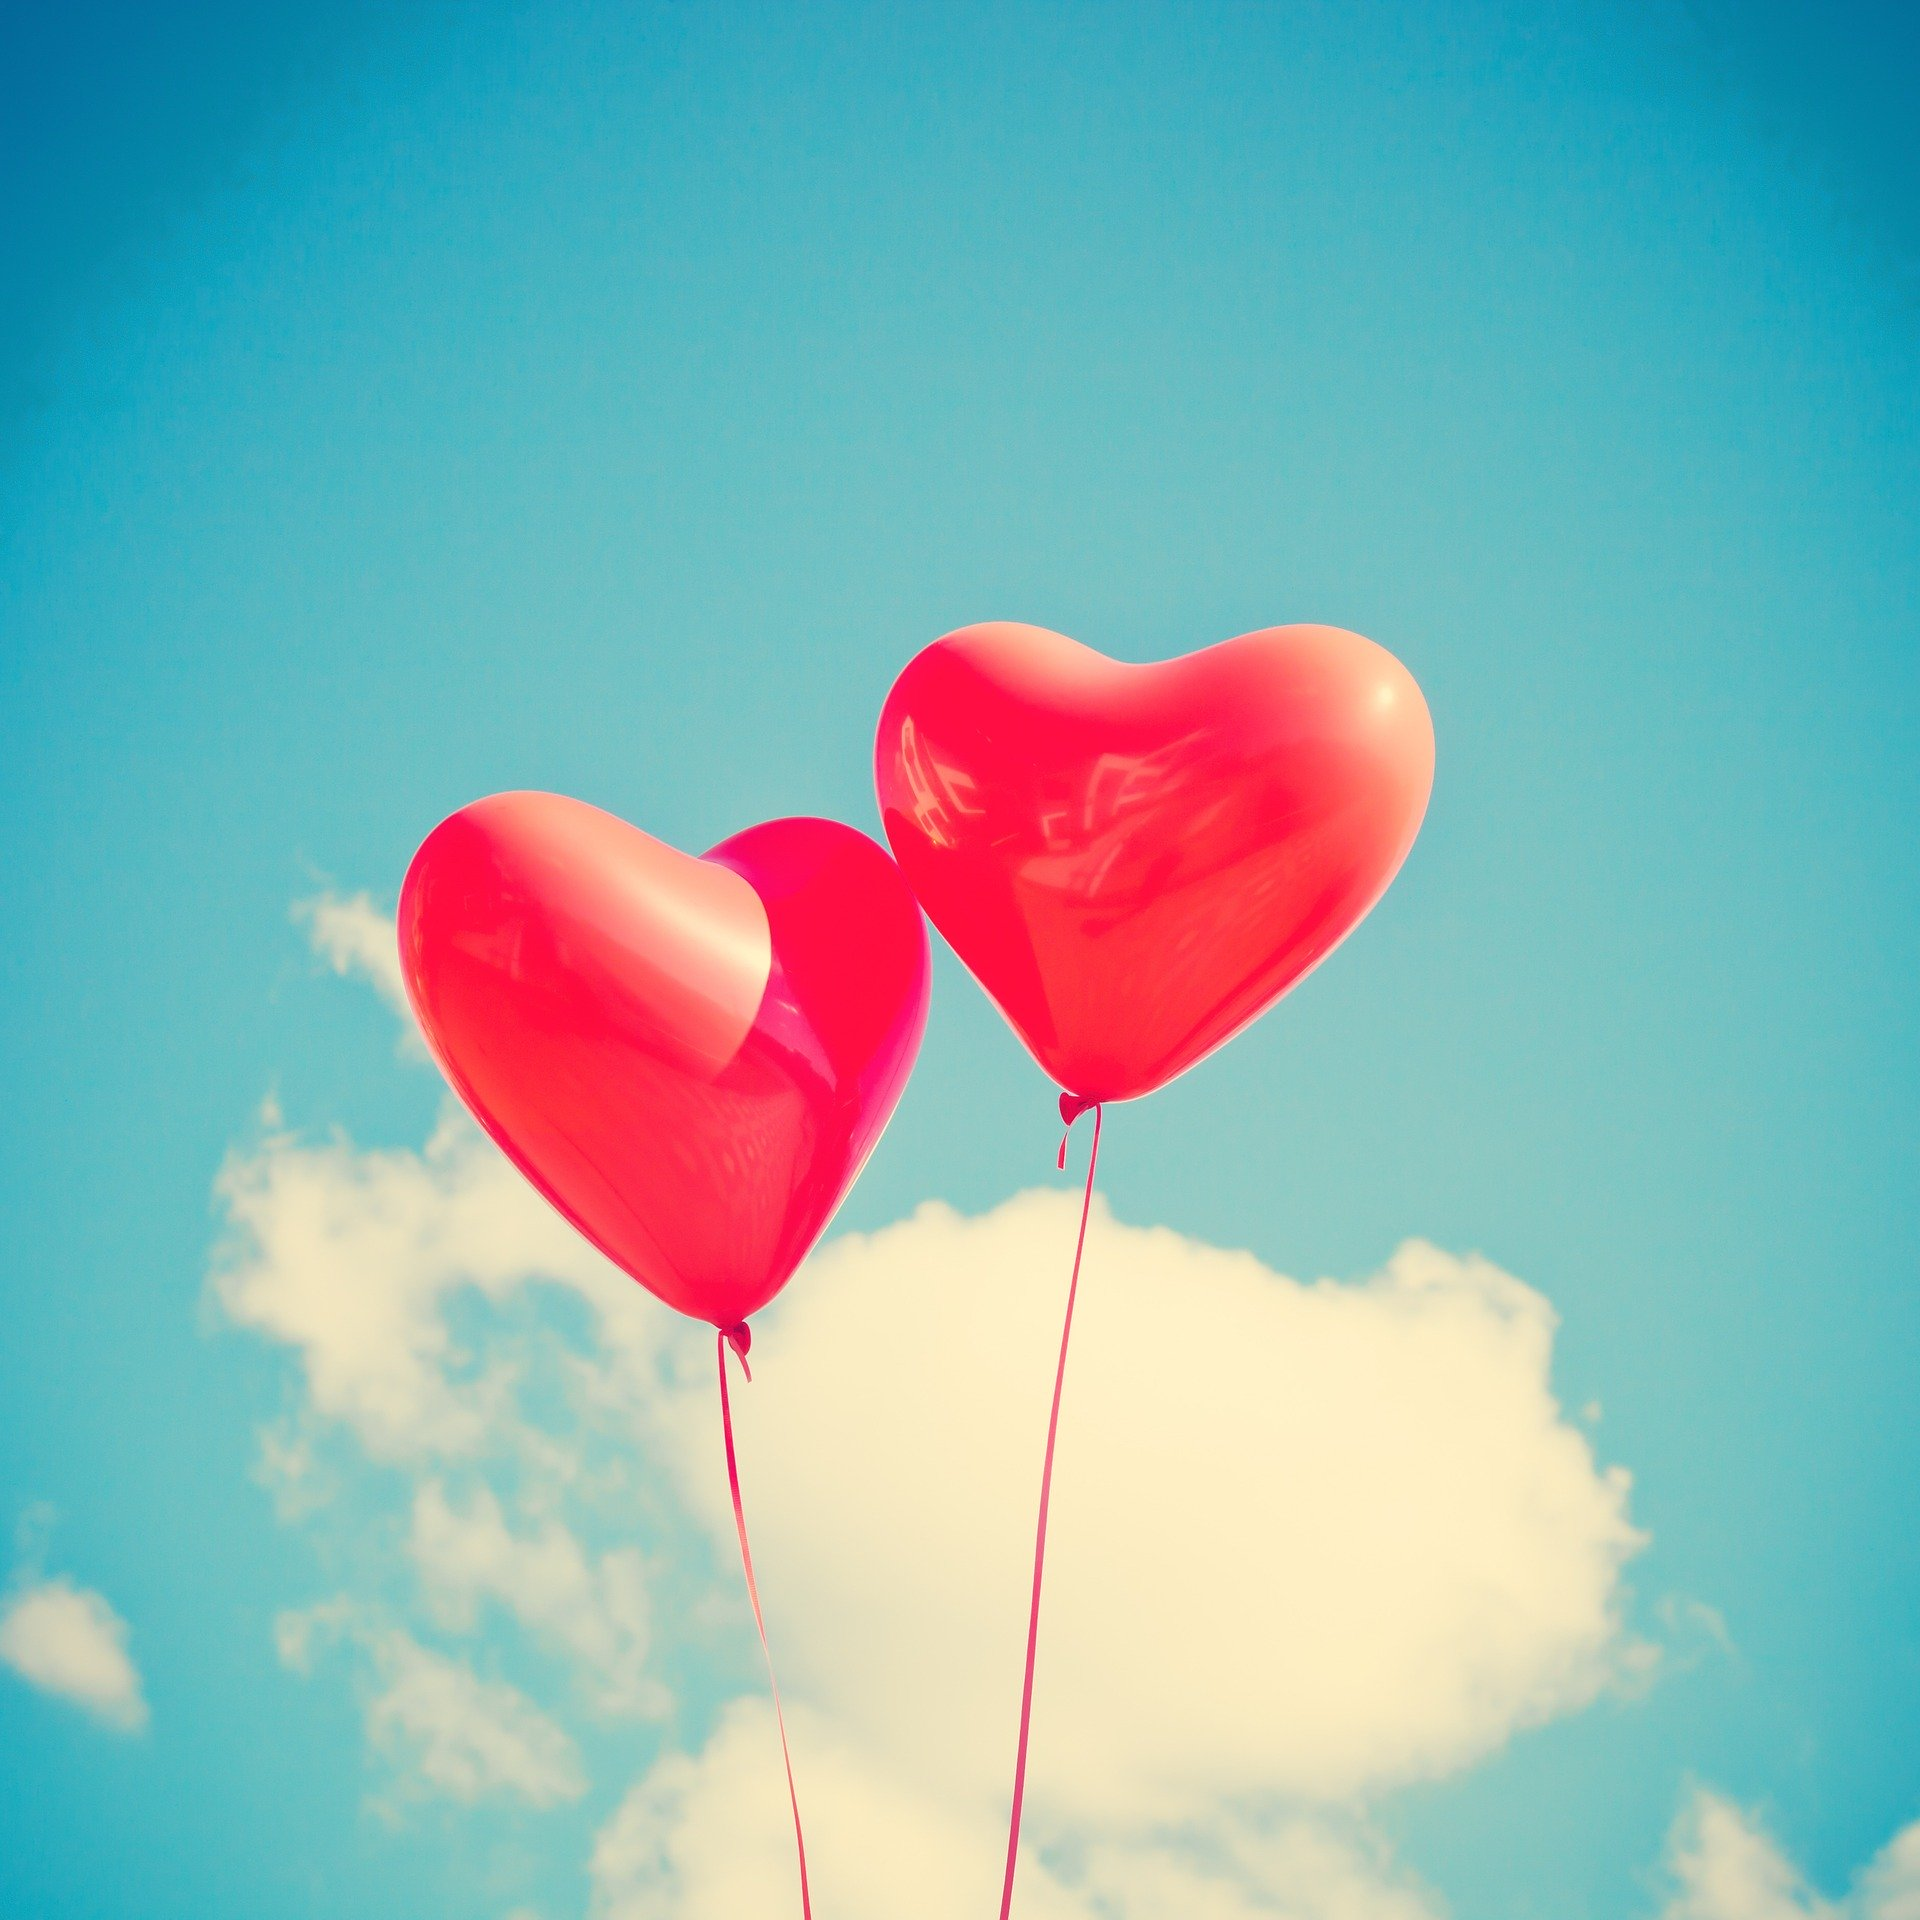 red heart shaped balloons against a blue sky